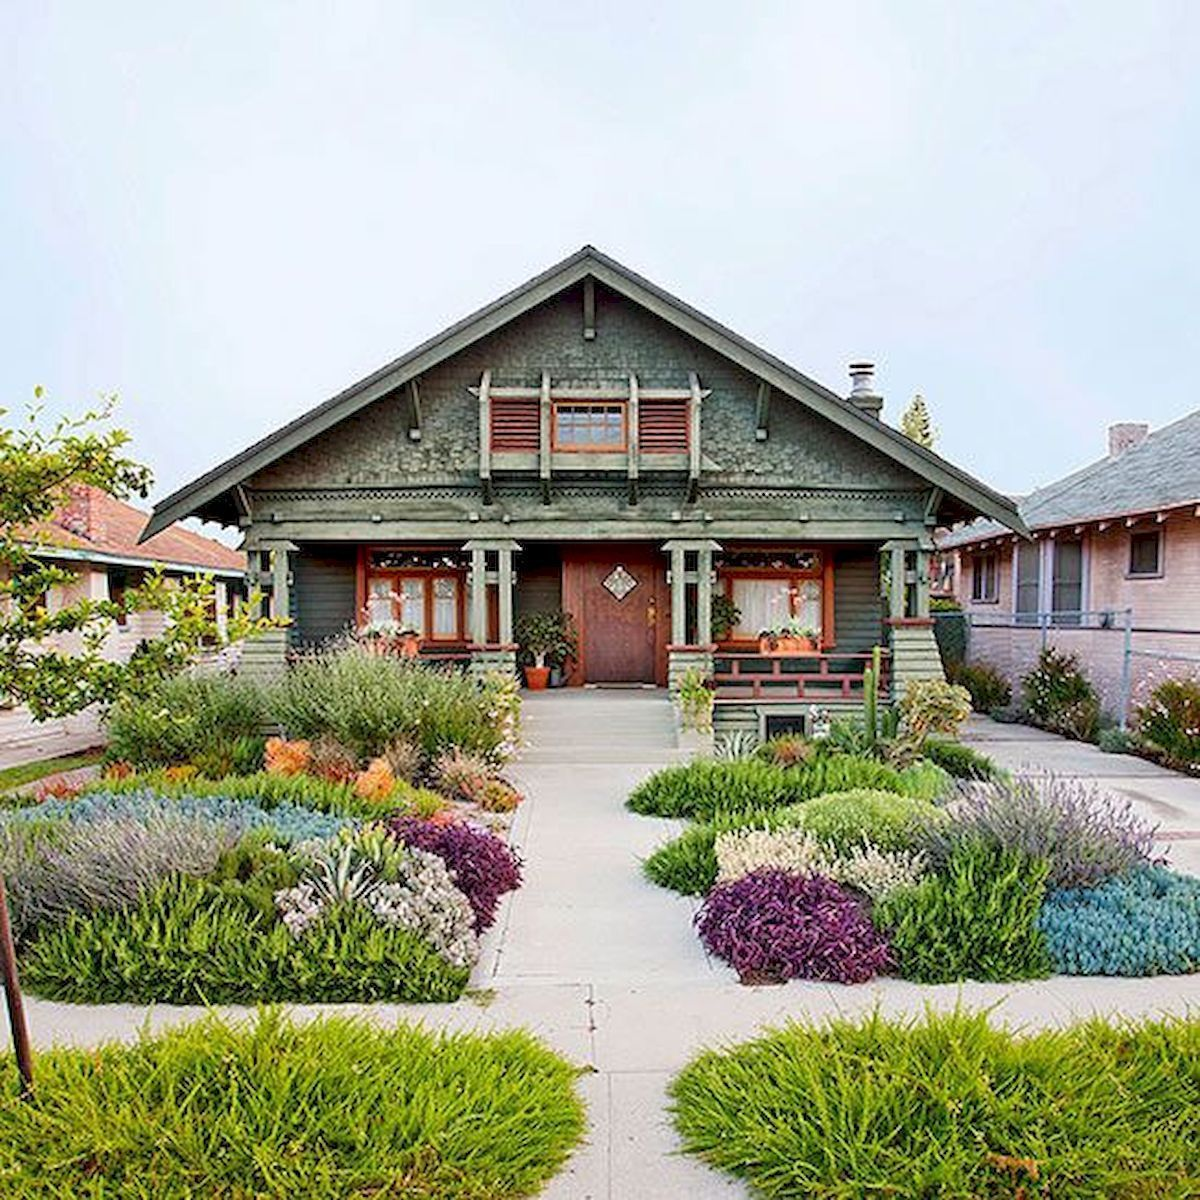 40 Cool Front Yard Garden Landscaping Design Ideas And ... on Front Yard Renovation Ideas id=30242